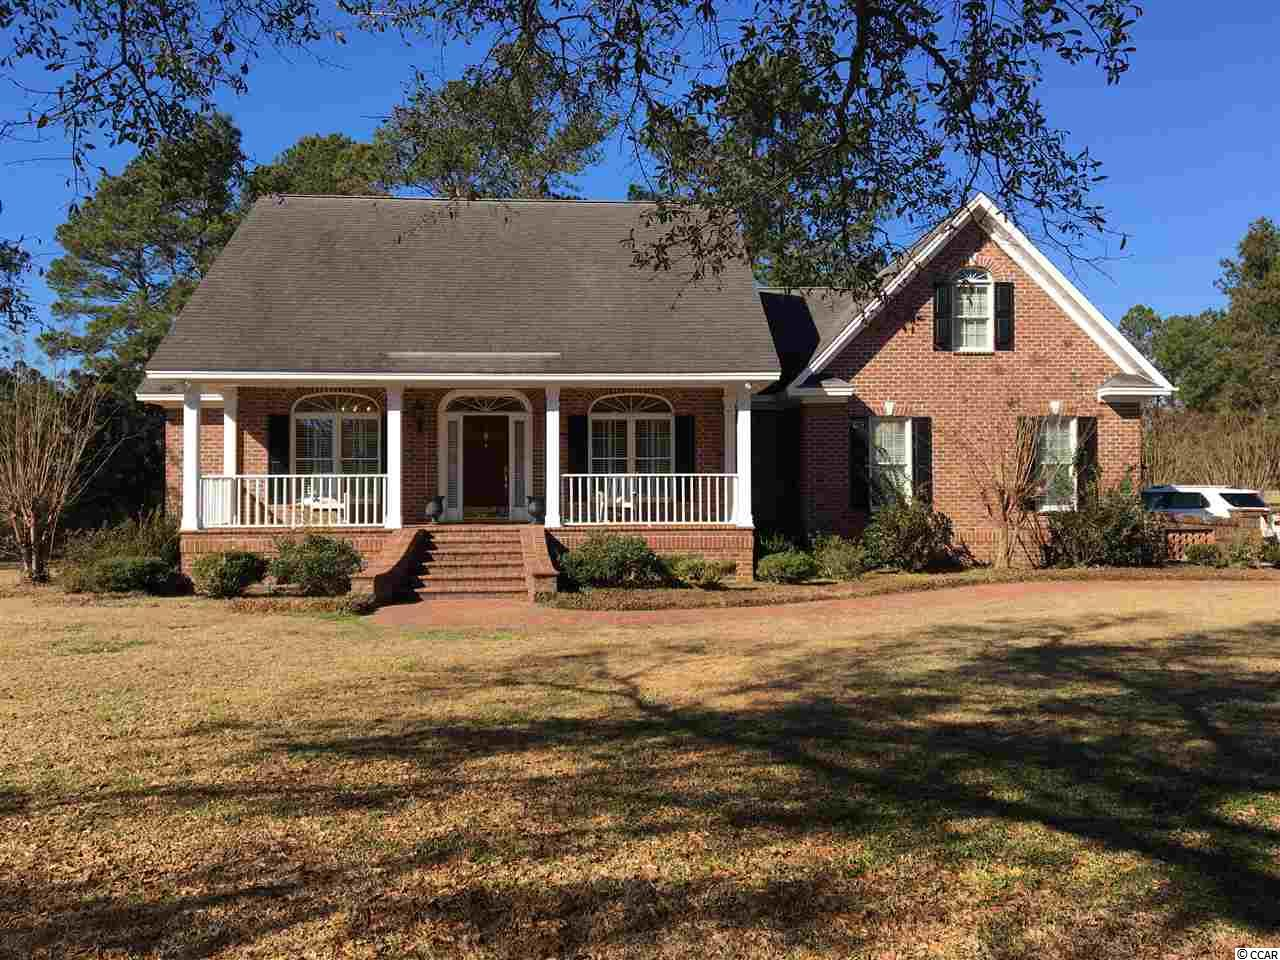 Single Family Home for Sale at 549 Myrtlewood Lane 549 Myrtlewood Lane Johnsonville, South Carolina 29555 United States